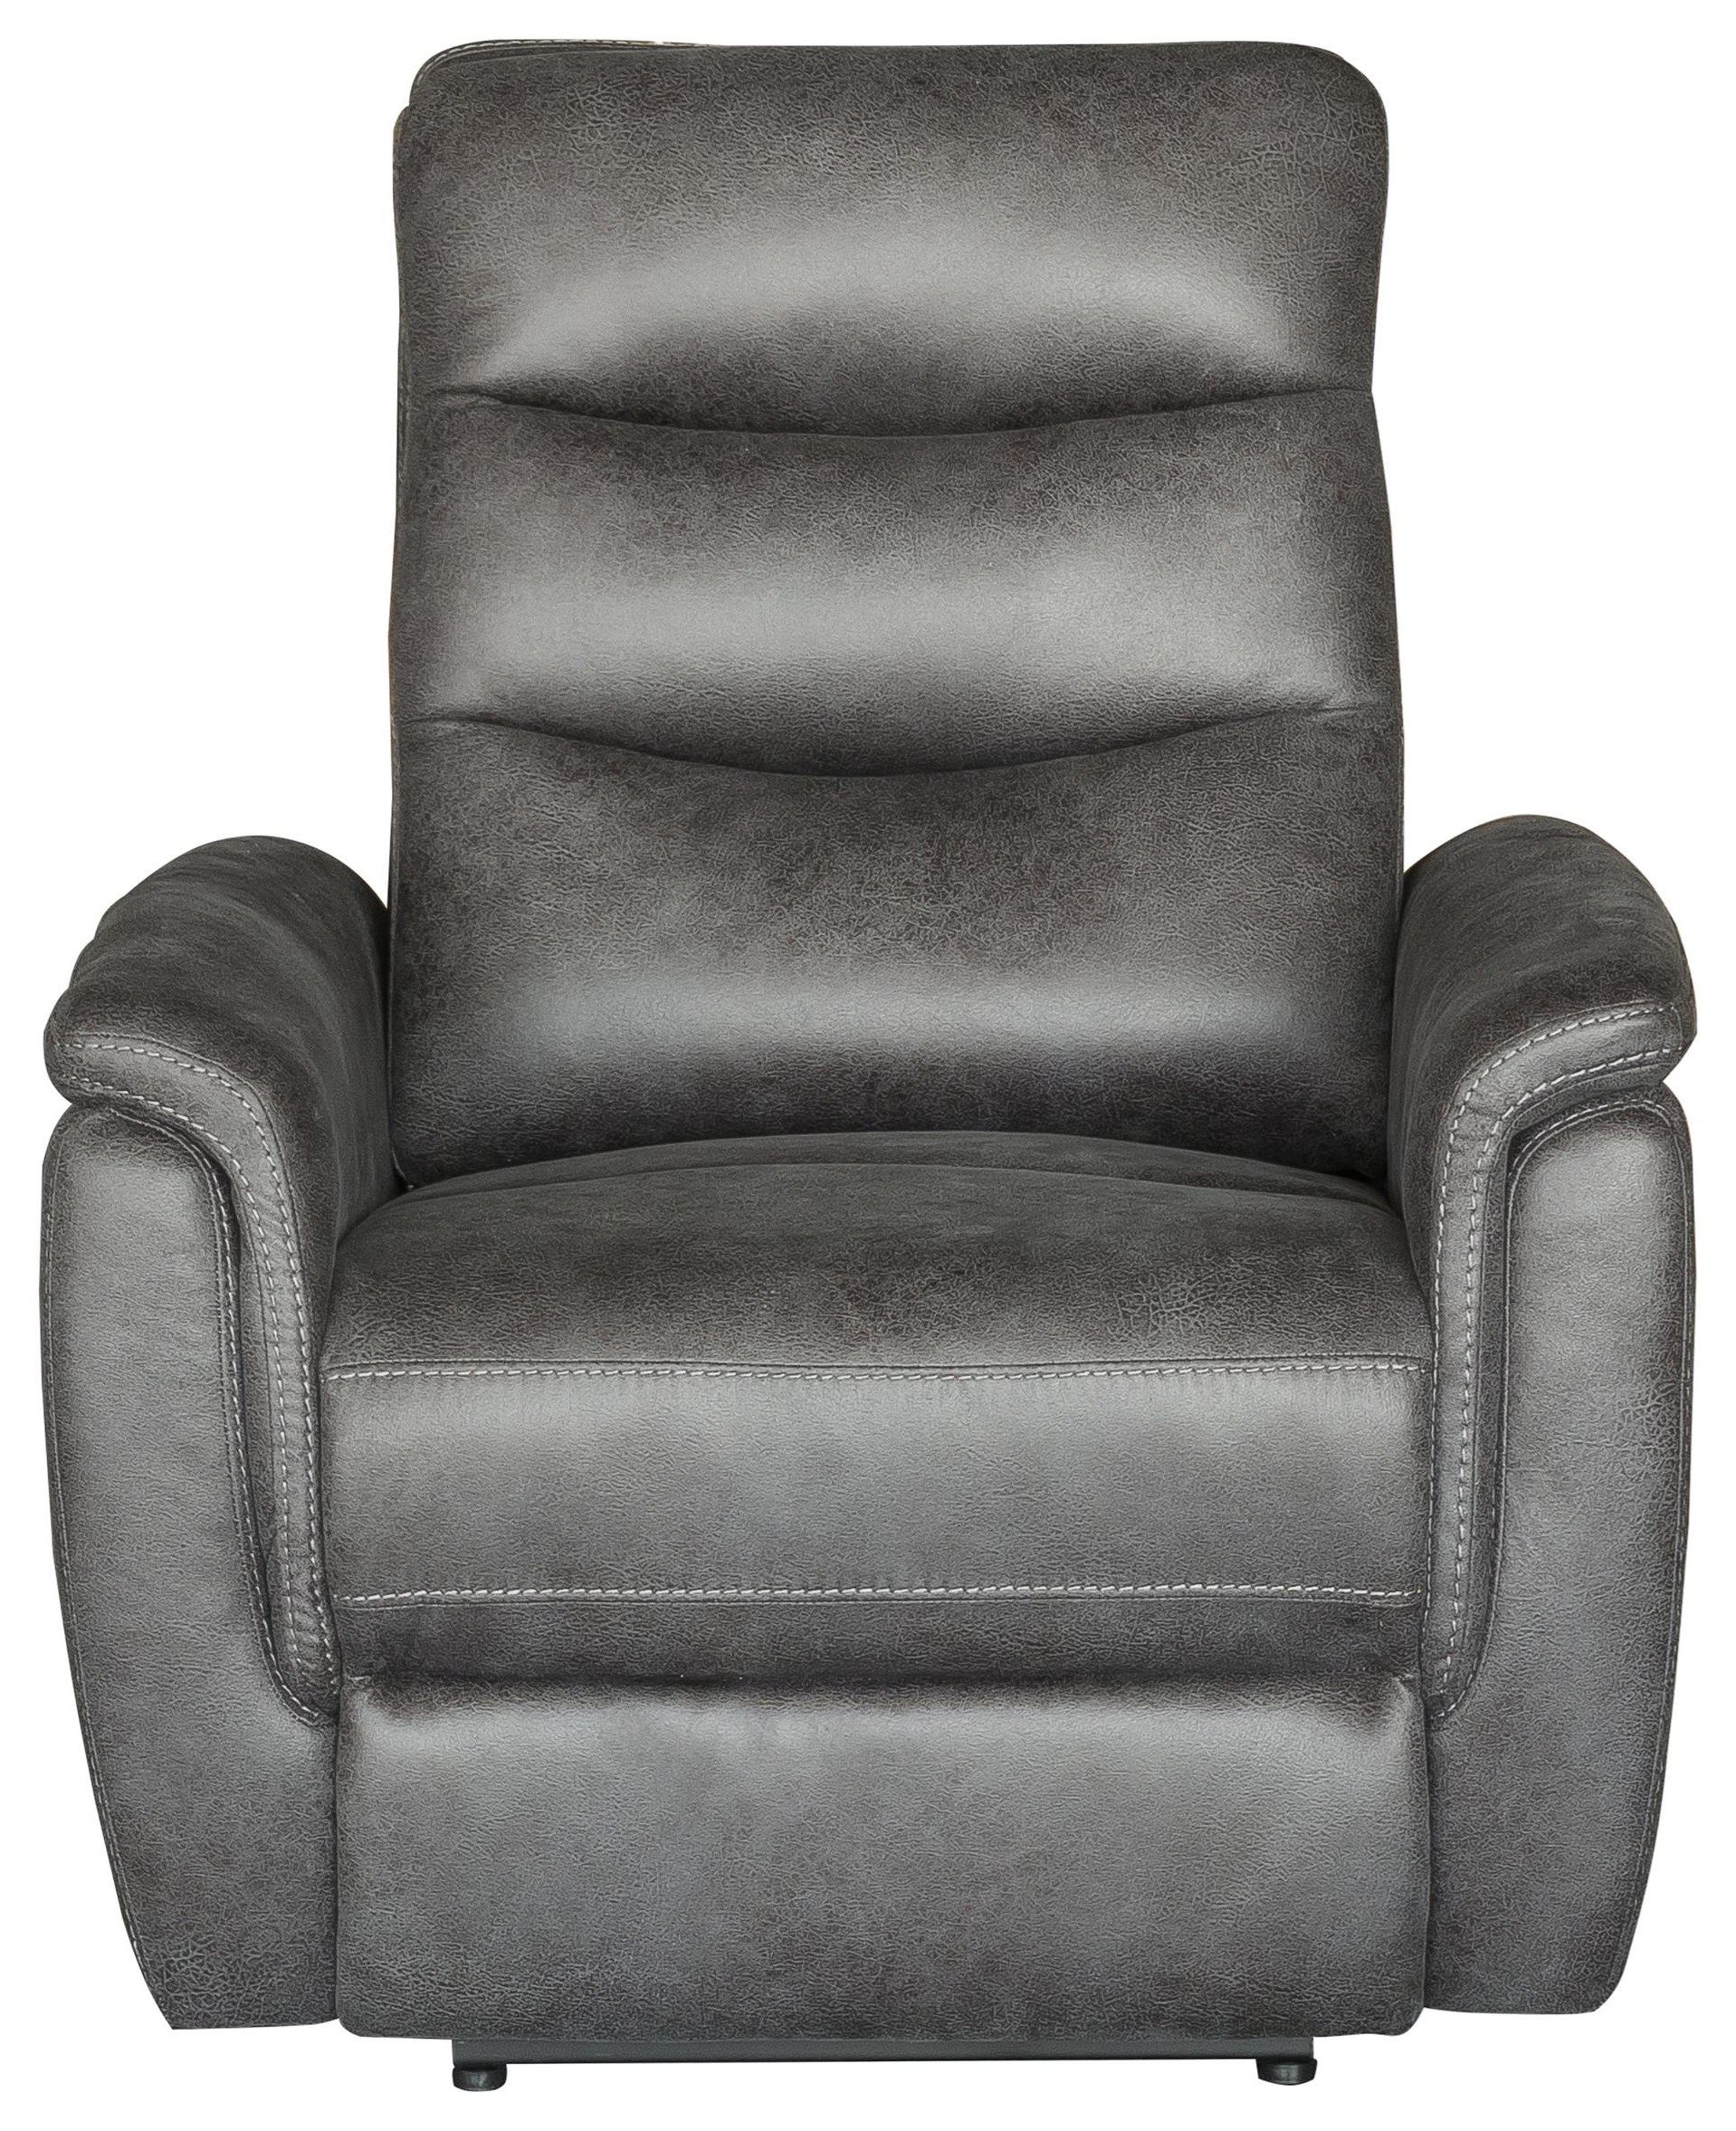 Graham Power Recliner by Klaussner International at HomeWorld Furniture